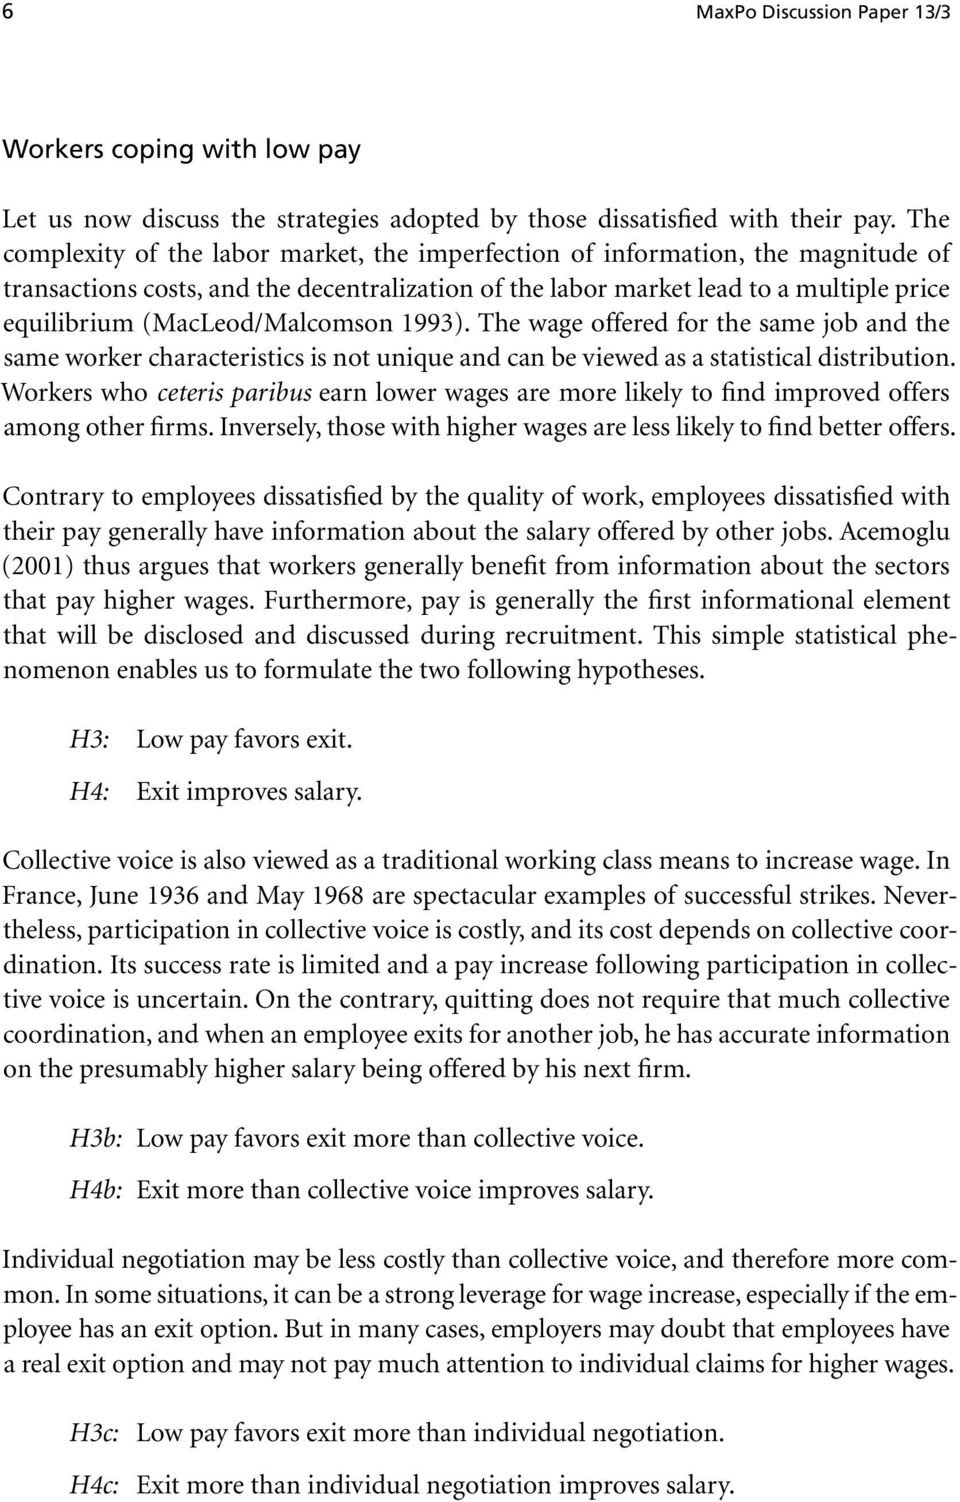 (MacLeod/Malcomson 1993). The wage offered for the same job and the same worker characteristics is not unique and can be viewed as a statistical distribution.